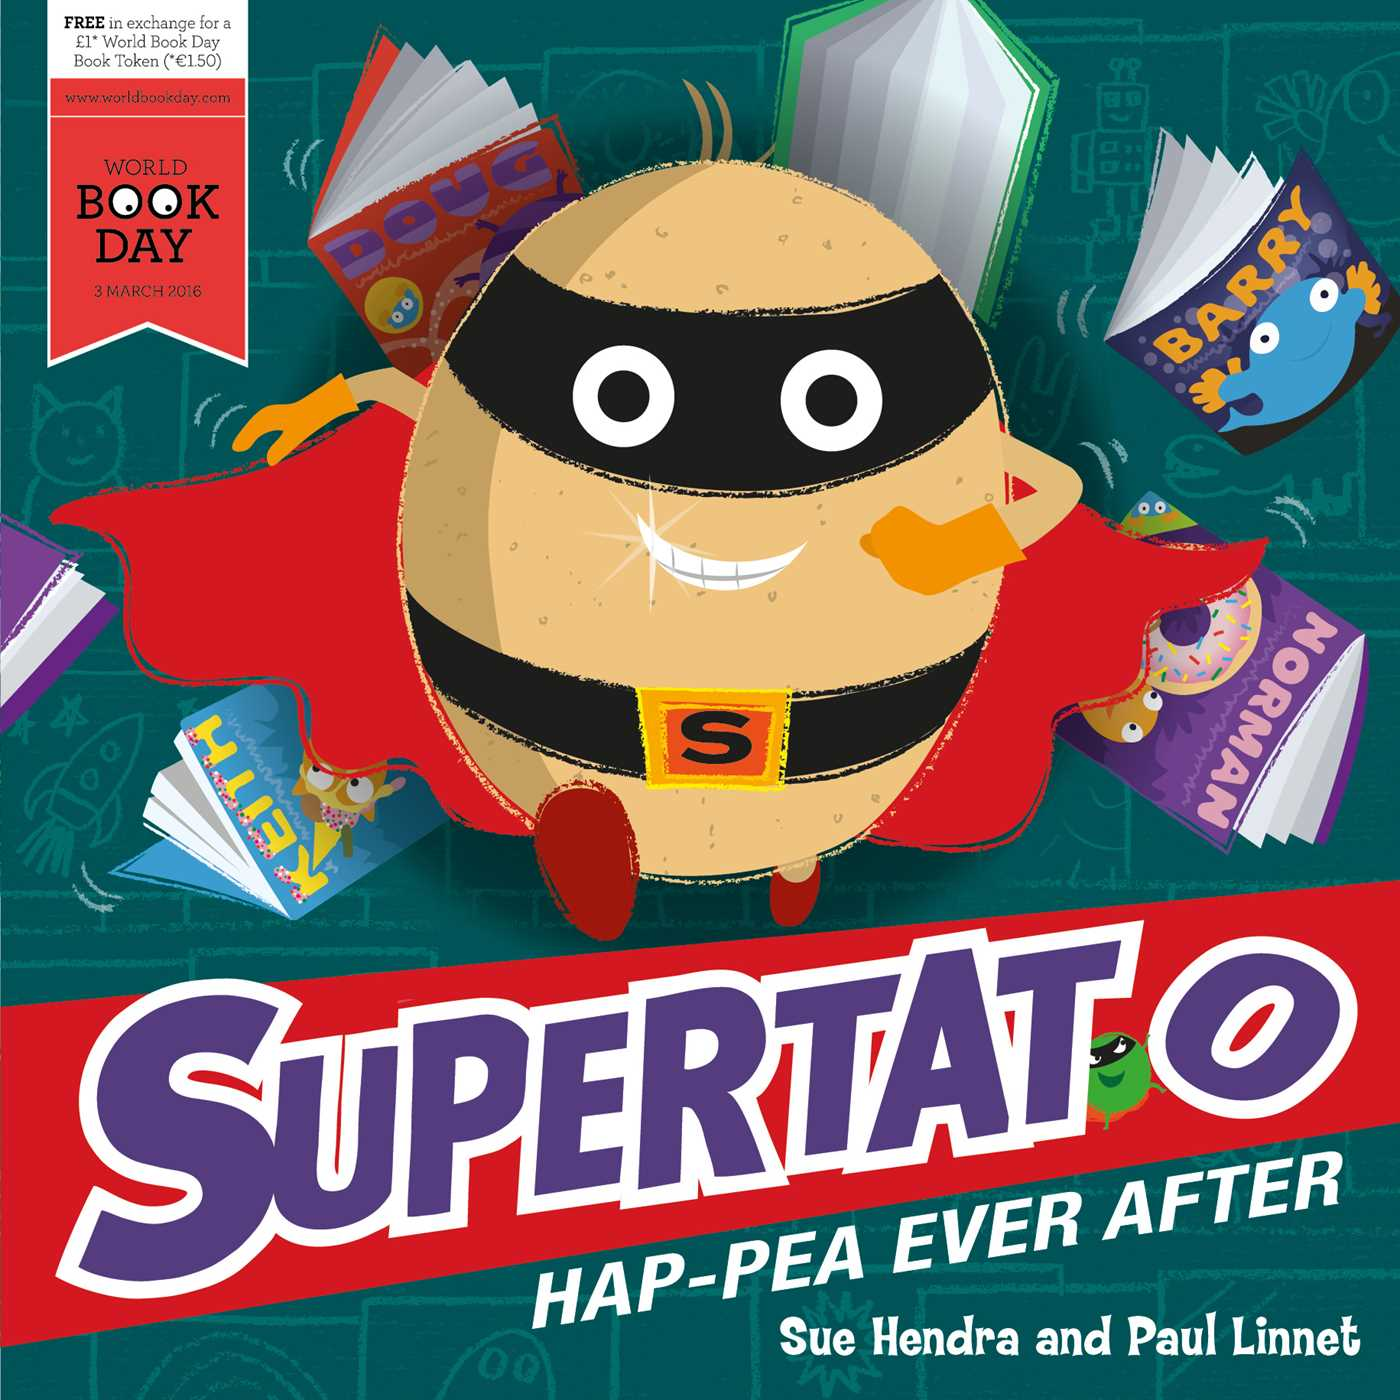 Book Cover Image (jpg): Supertato Happea Ever After